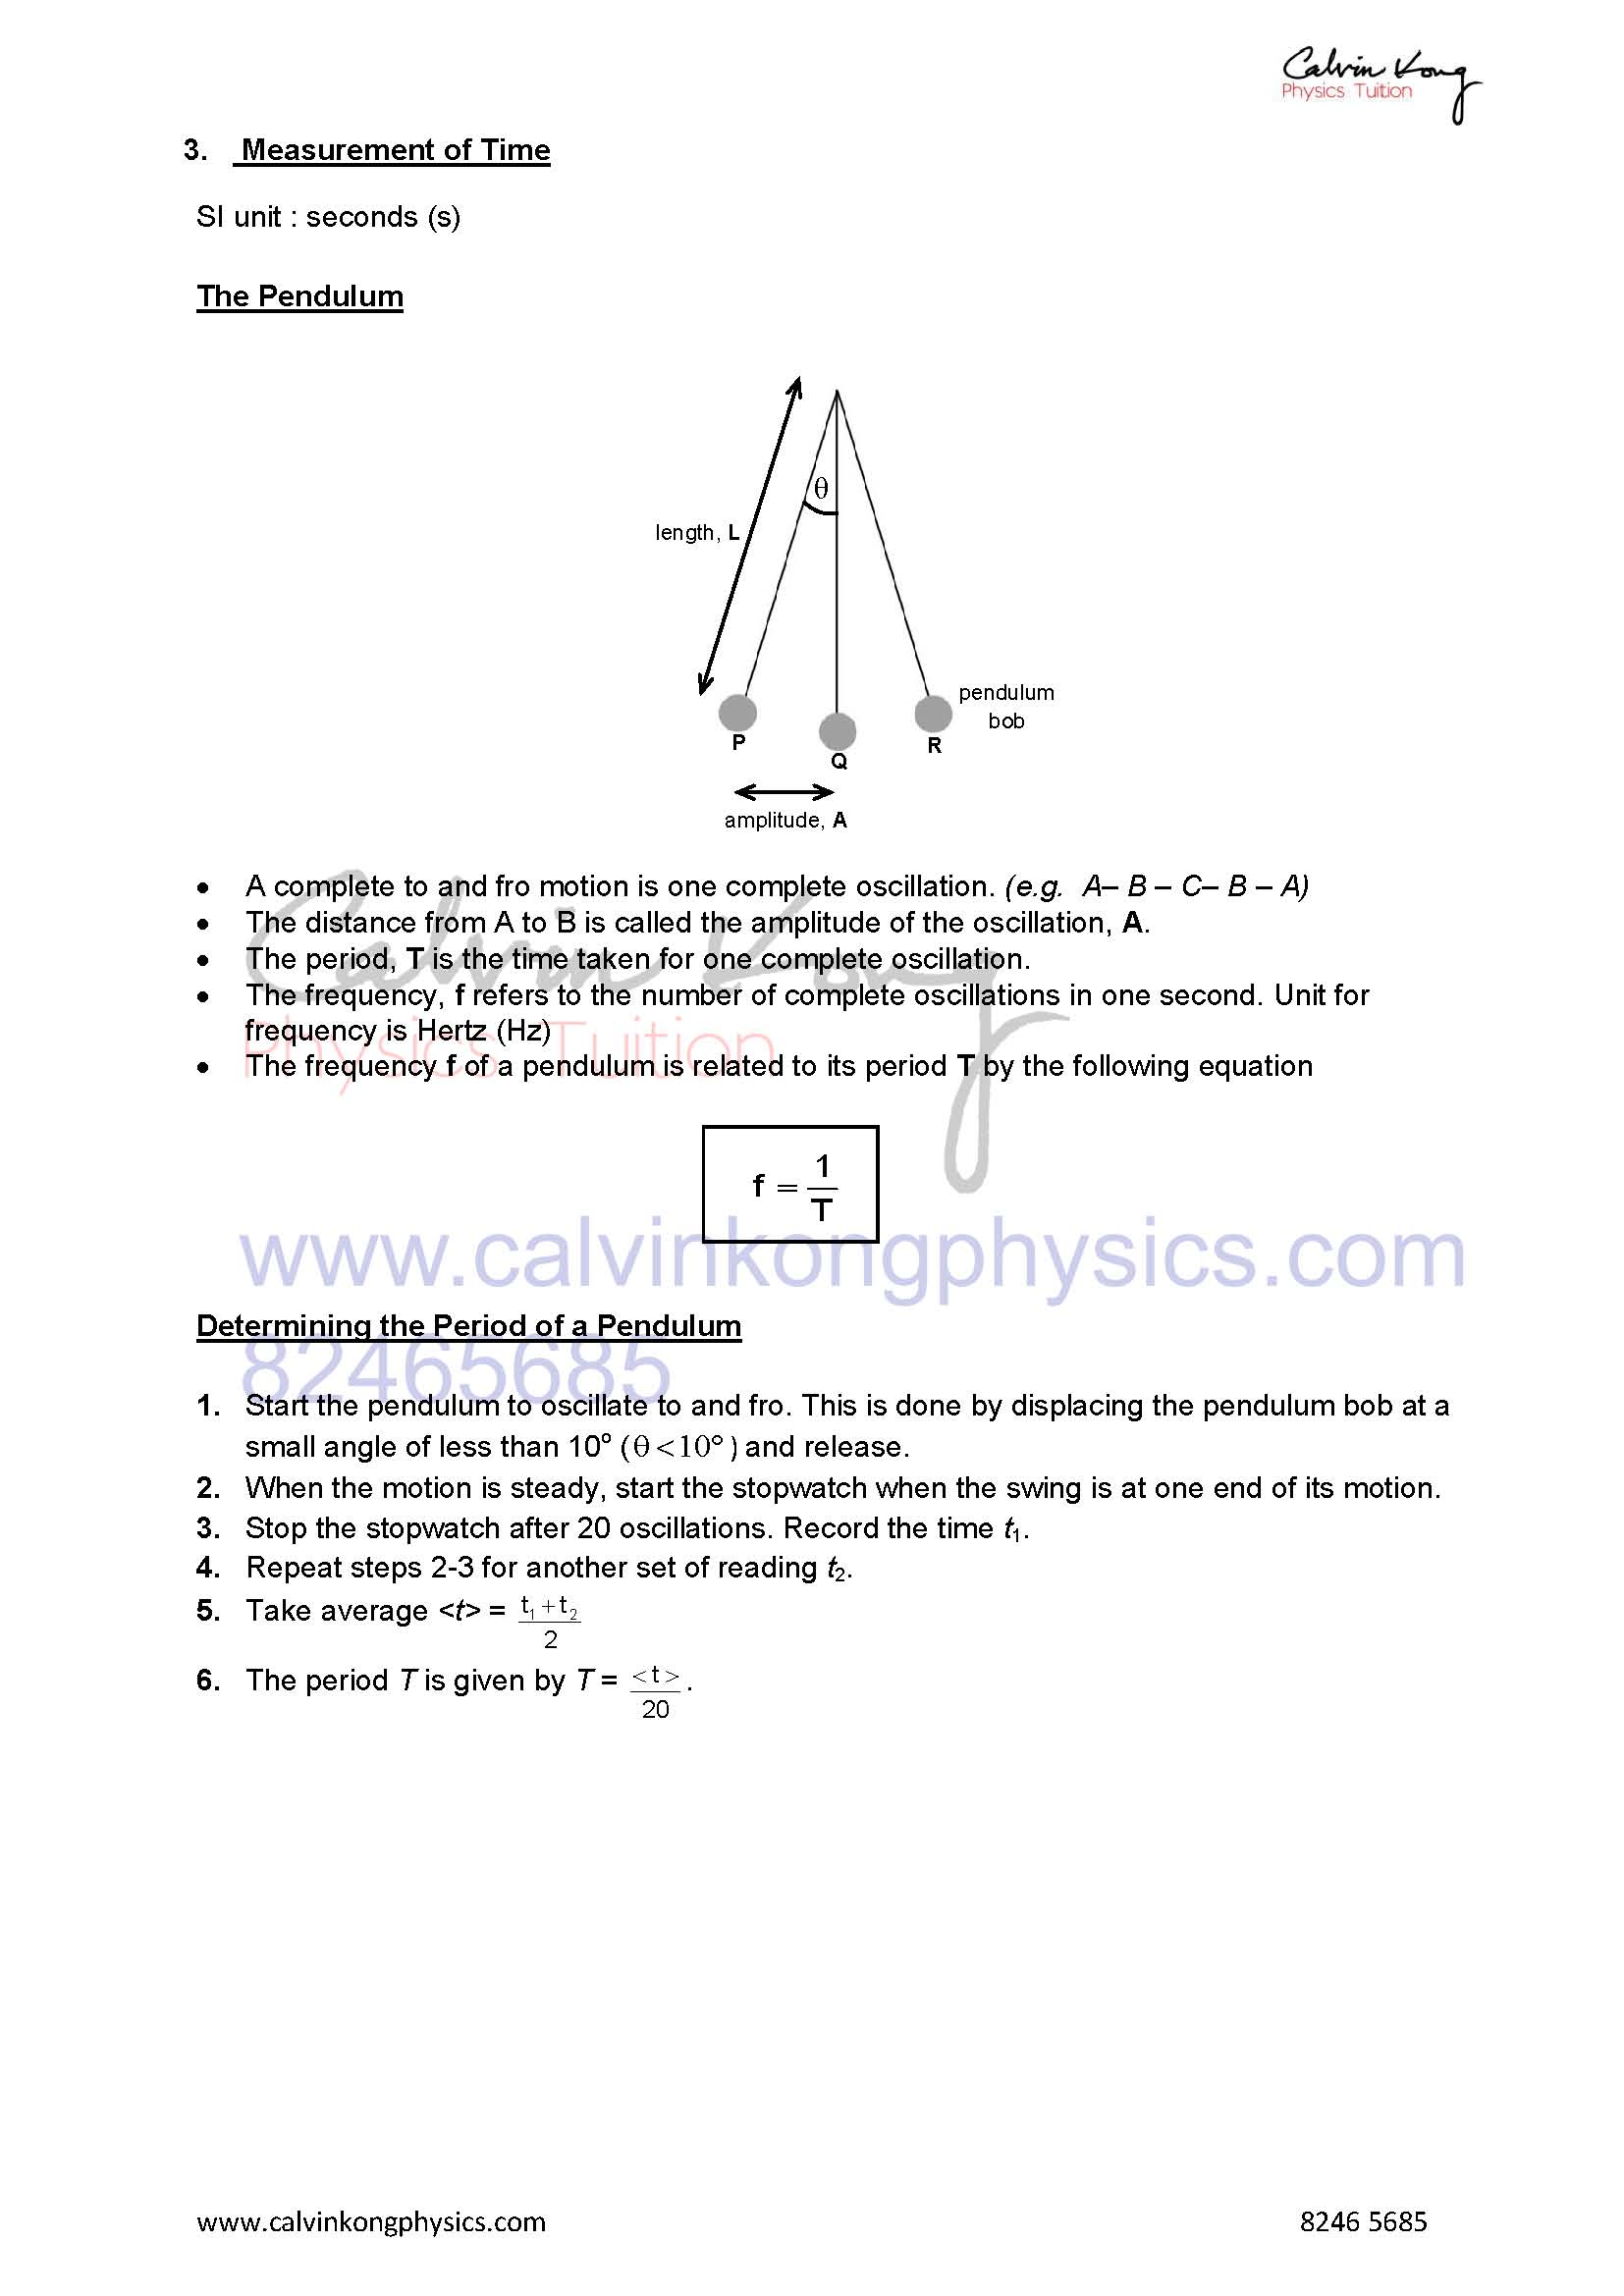 Describe how to measure a short interval of time including the period of a simple pendulum with appropriate accuracy using stopwatches or appropriate instruments.